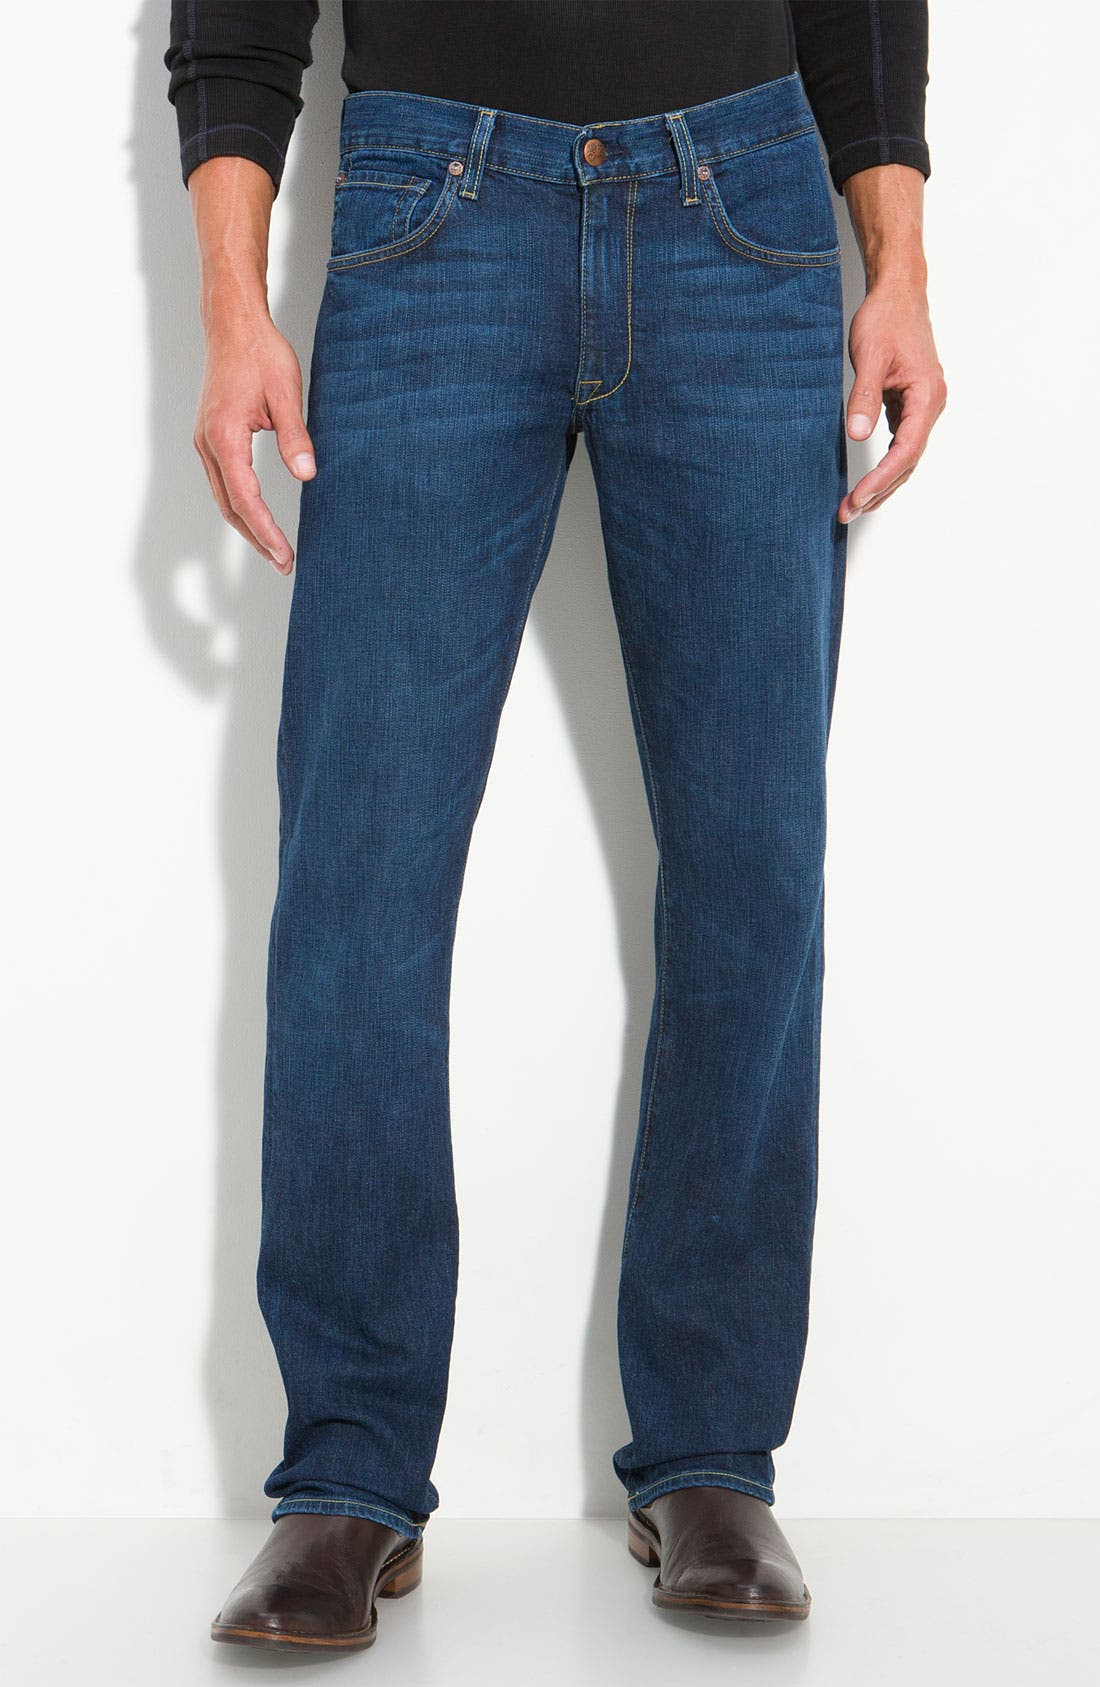 Alternate Image 1 Selected - Agave 'Gringo - Classic Fit' Straight Leg Jeans (Dana Point Dark)